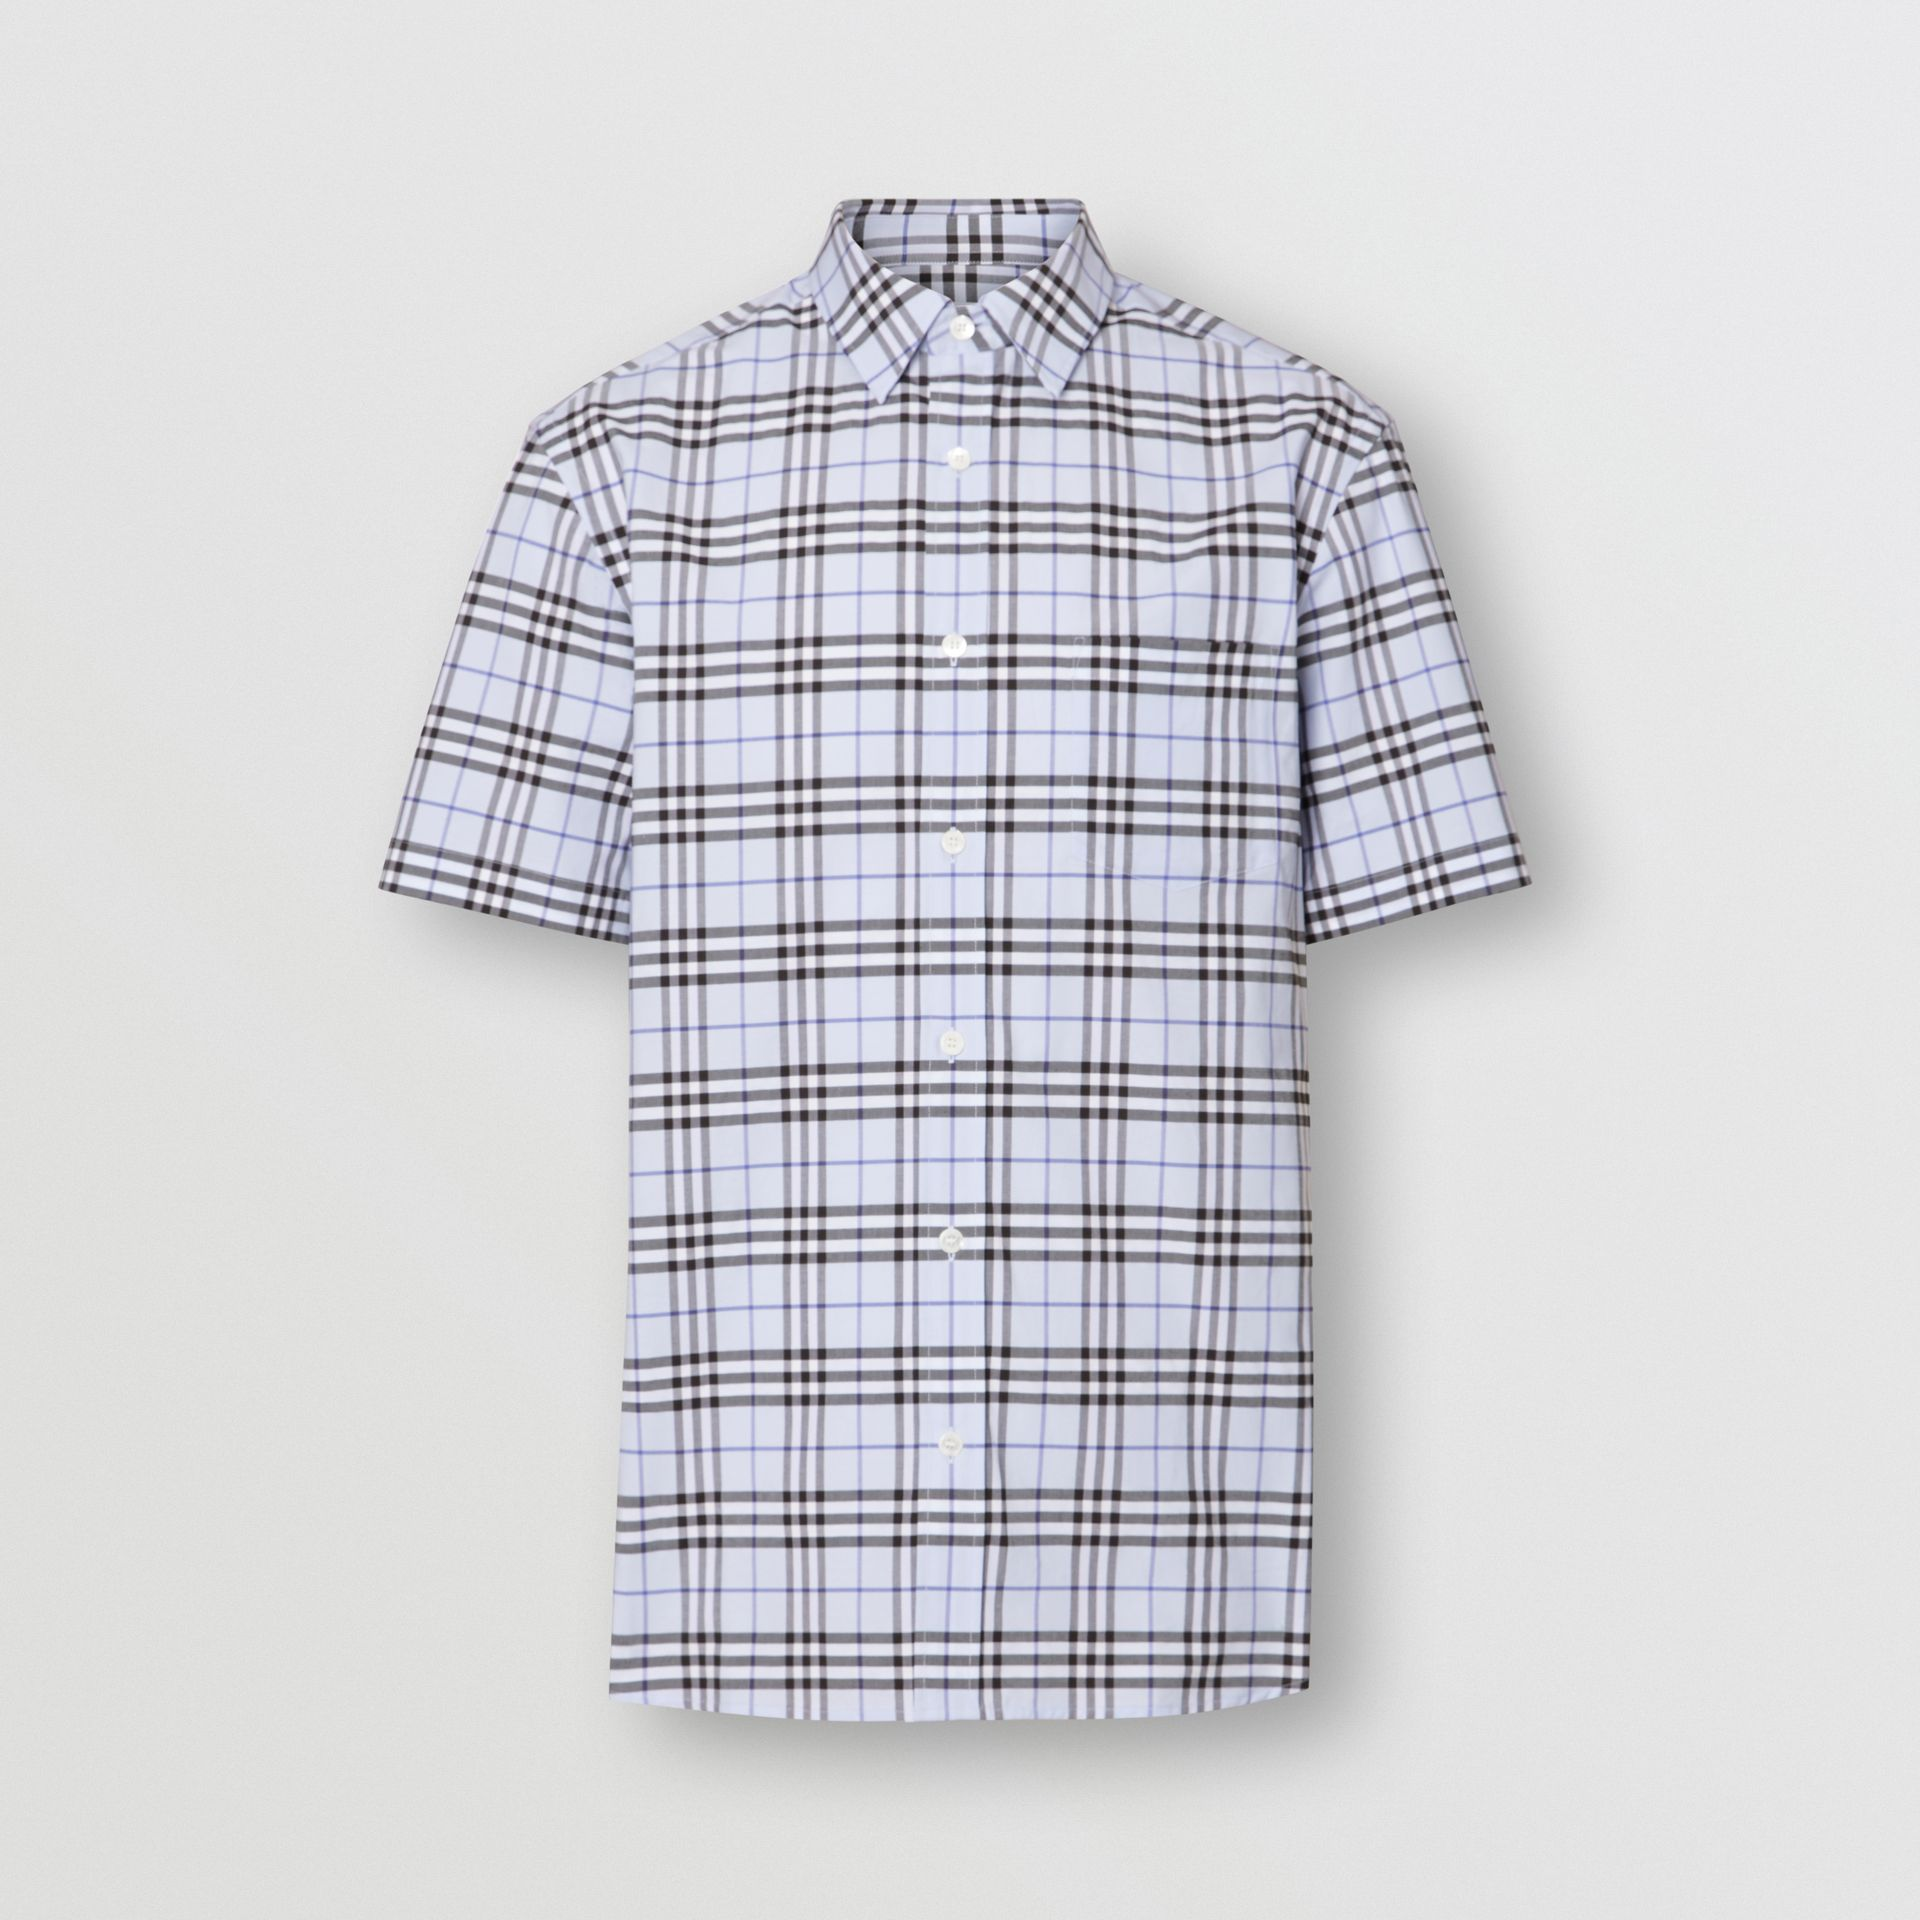 Short-sleeve Check Stretch Cotton Shirt in Sky Blue - Men | Burberry United Kingdom - gallery image 3